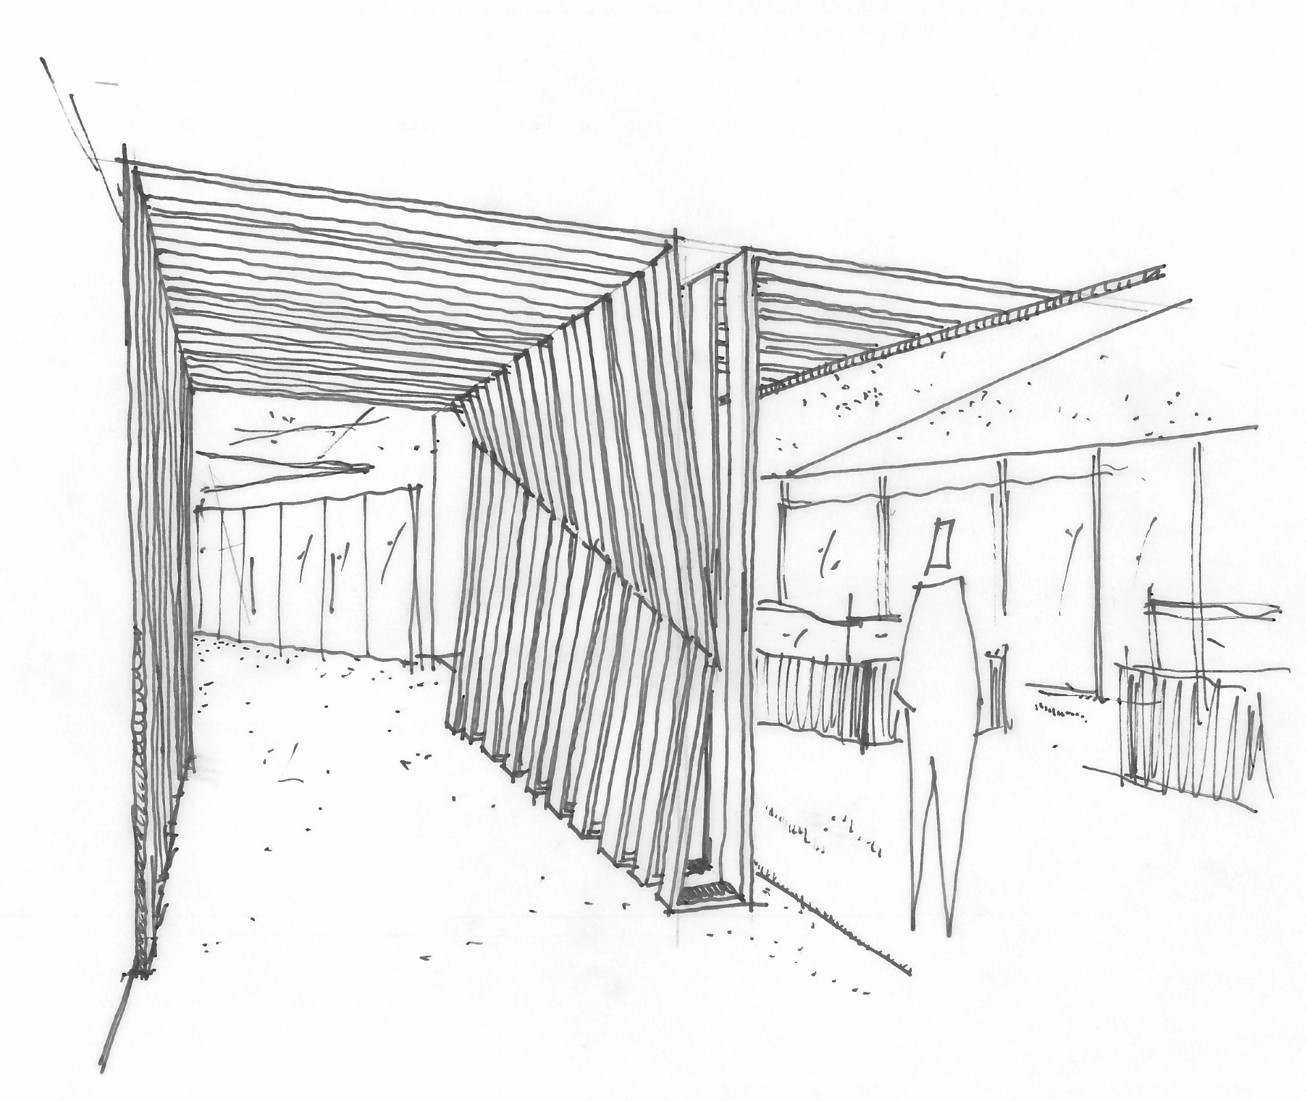 Concept Sketch: The design incorporated a wood slat feature which helps create spatial separations while aesthetically stitching the space together with warm, natural tones & textures.